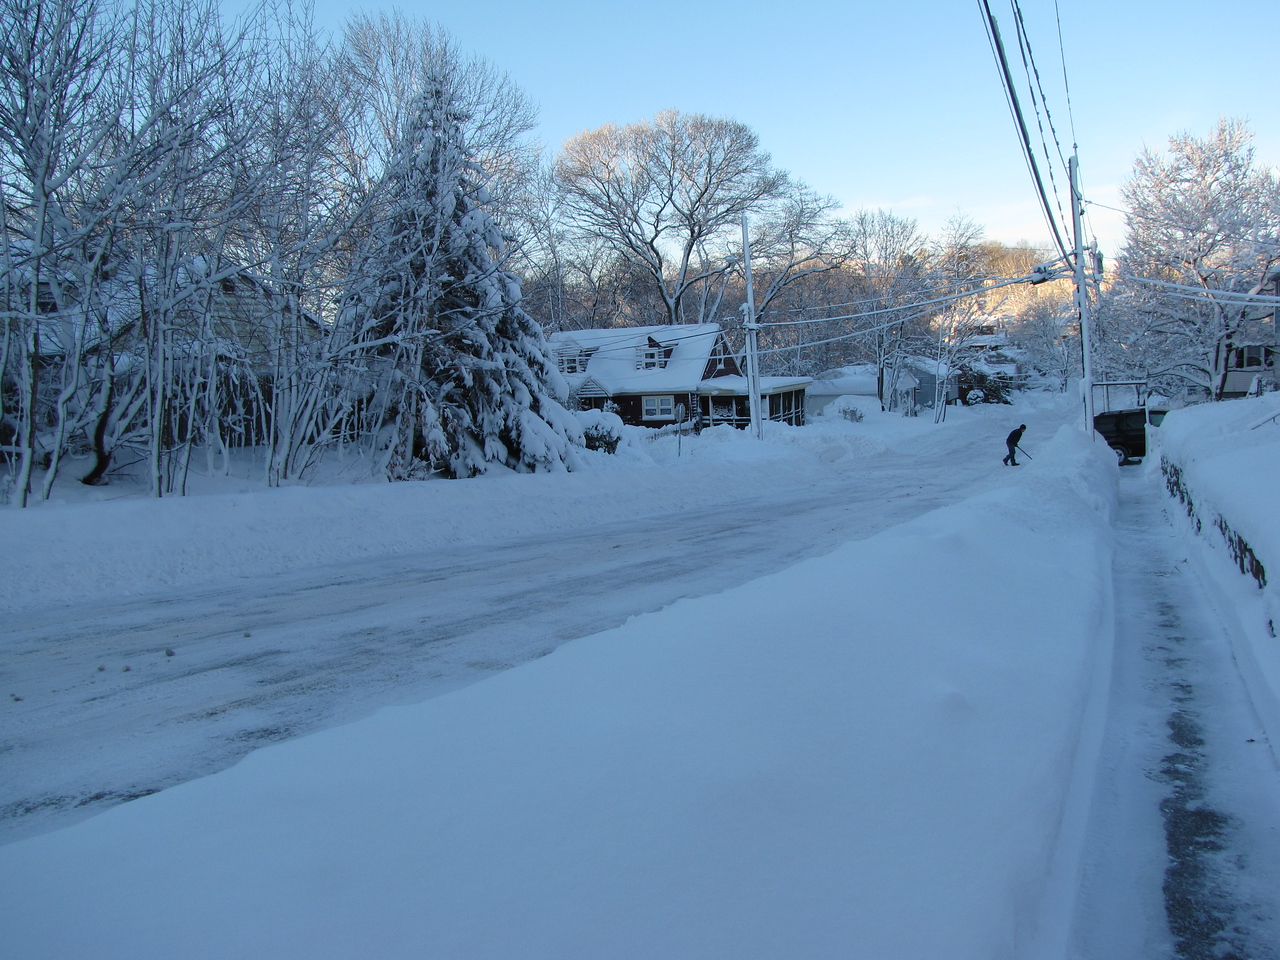 January 11, 2011 - 15 inches